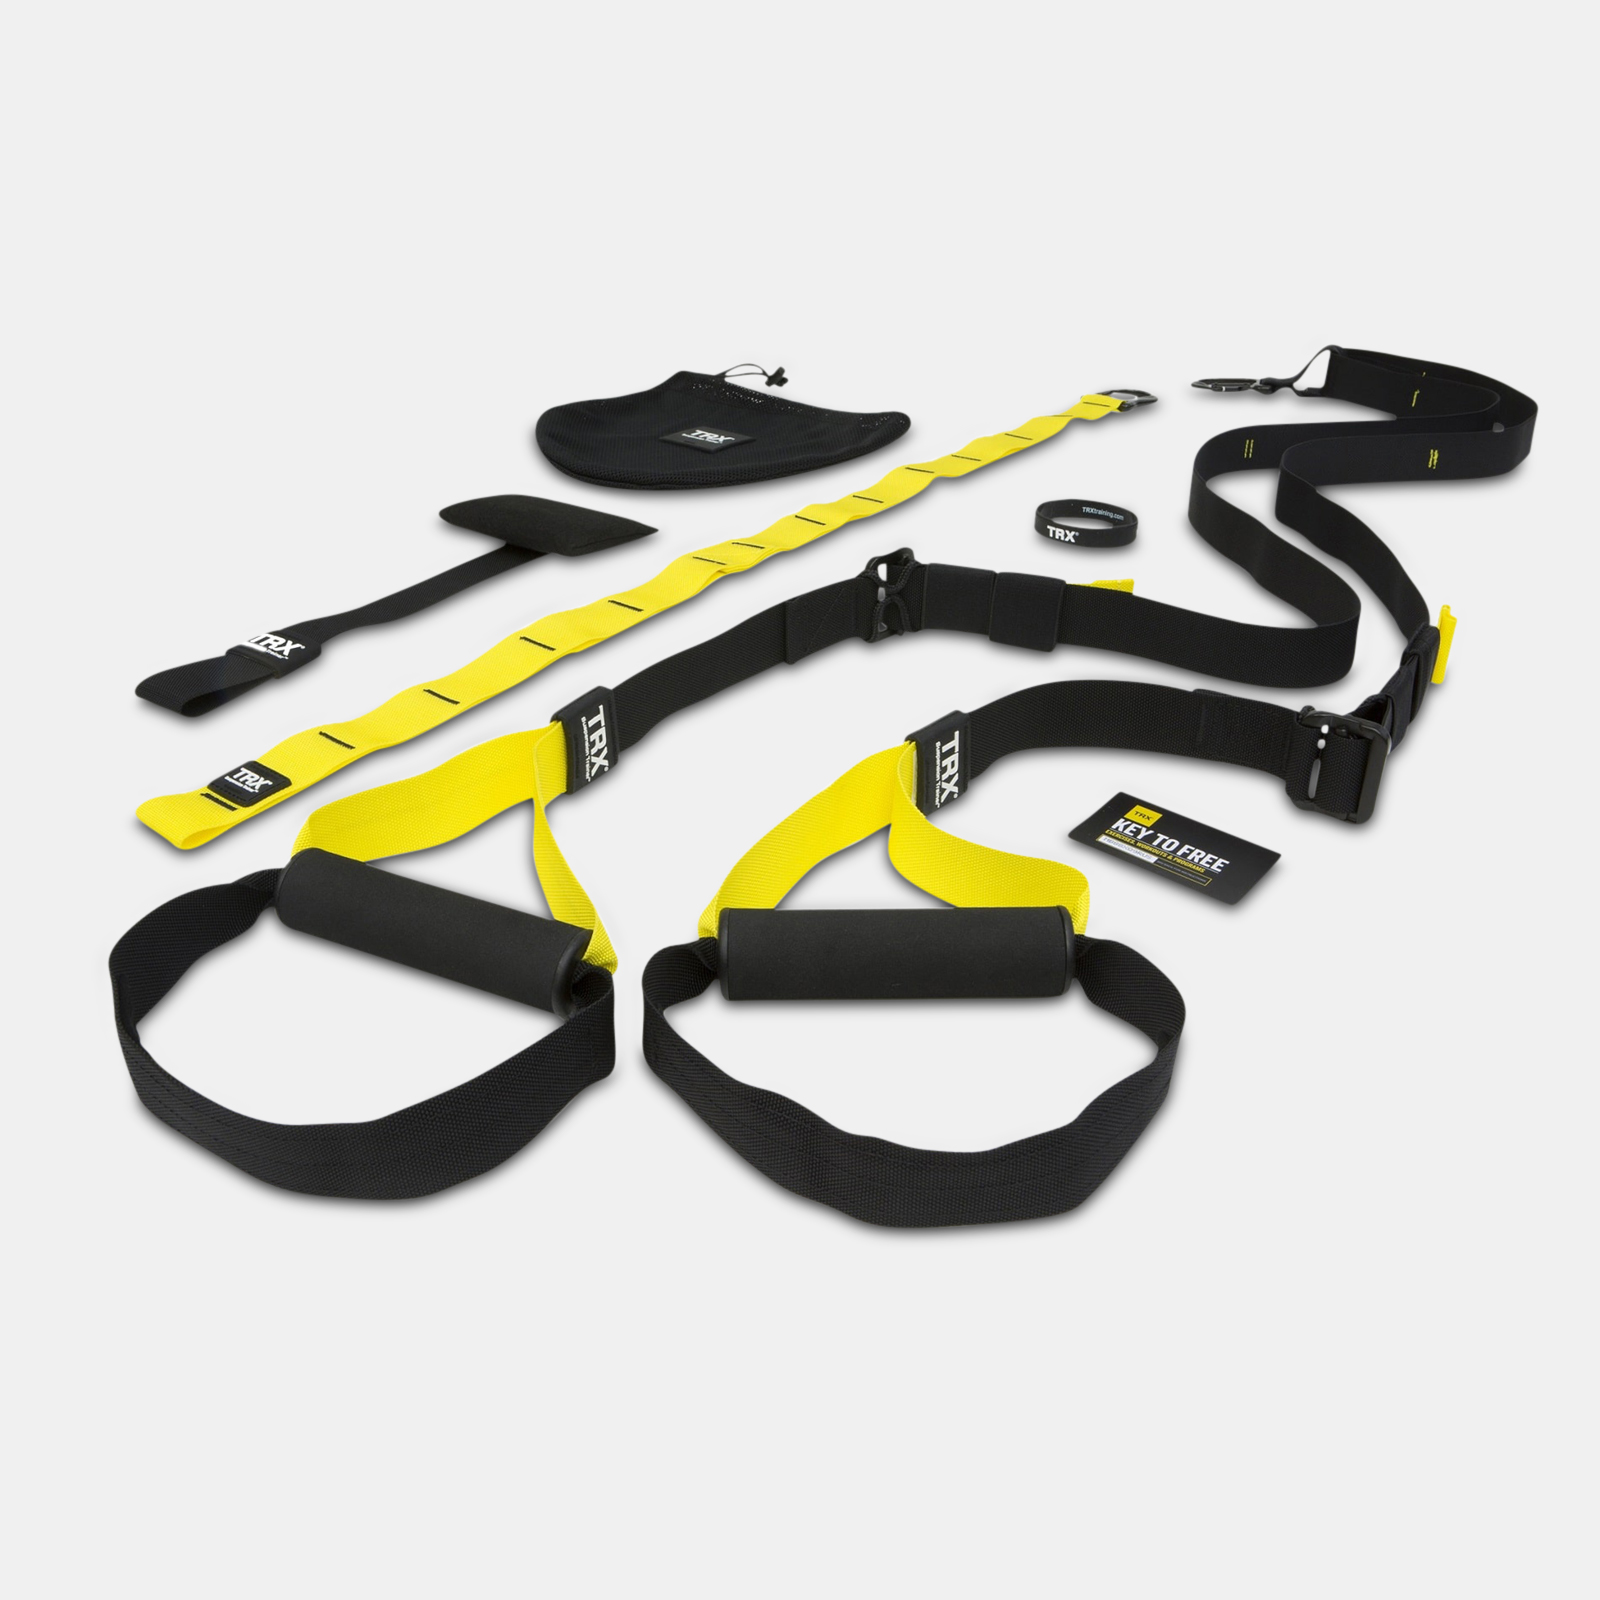 TRX Suspension Training Home Kit V2 image